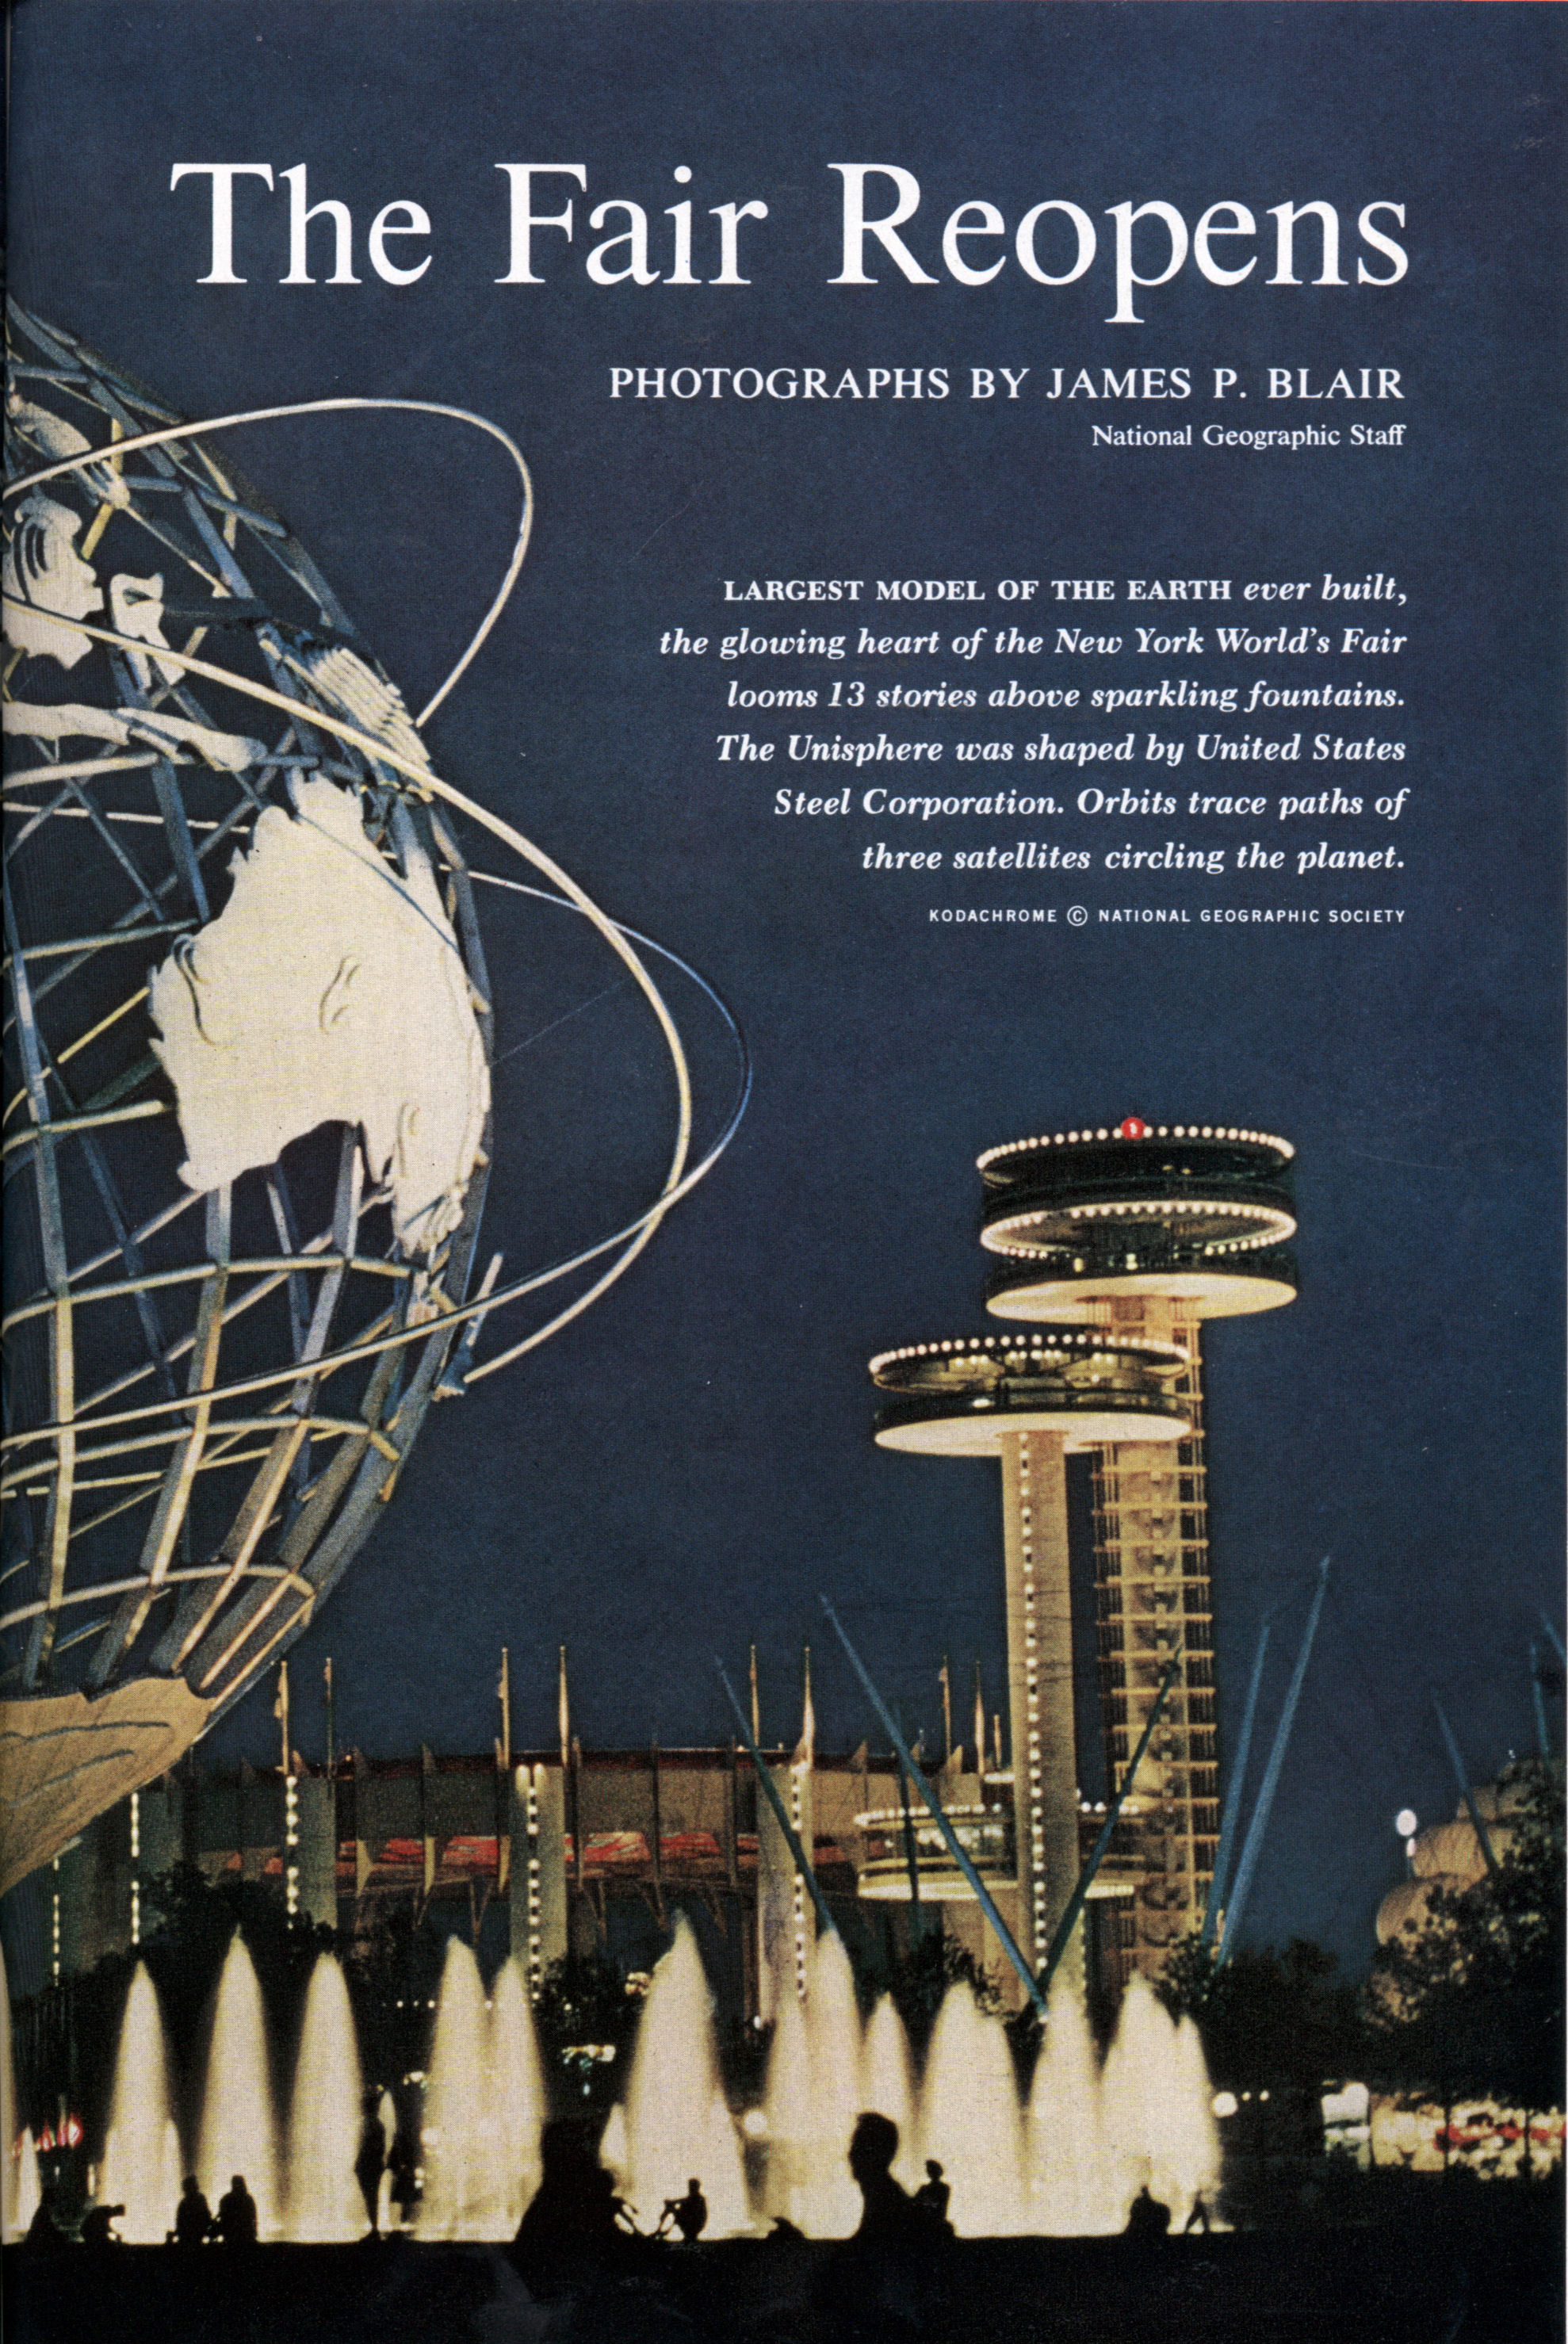 thesis on the 1965 new york worlds fair These lists are graduate alumni who produced either a dissertation or a thesis within or  dissertations + theses  japanese pavilion at new york world's fair.